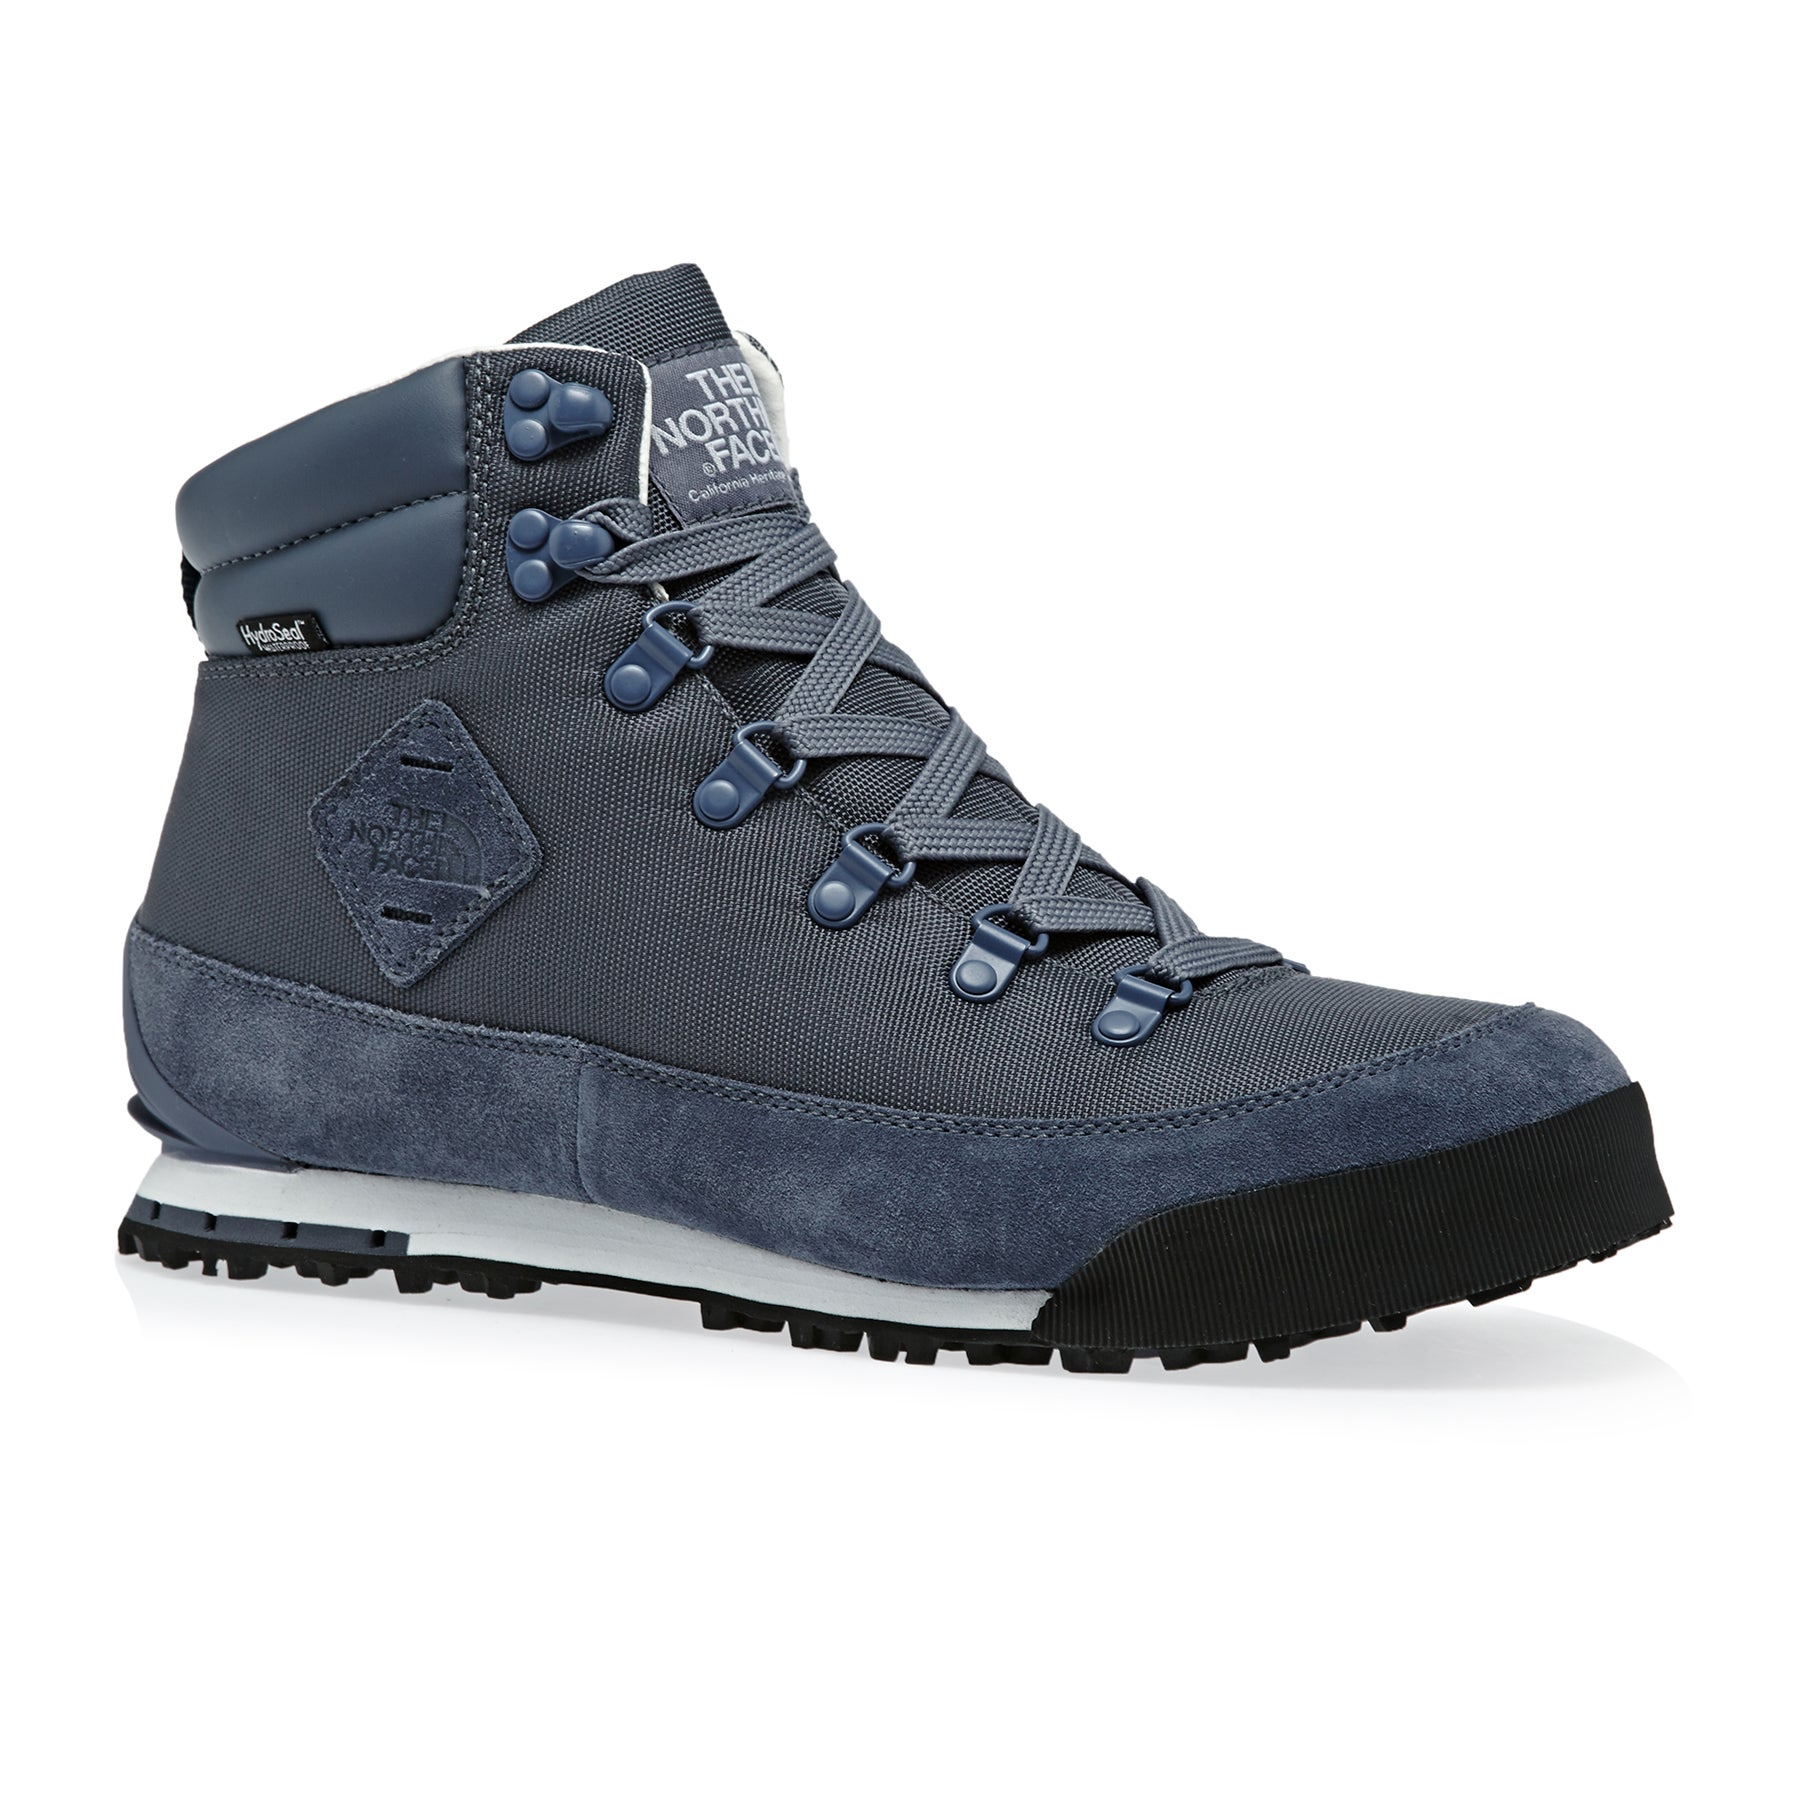 North Face Back To Berkeley Walking Boots - Grisaille Grey TNF White